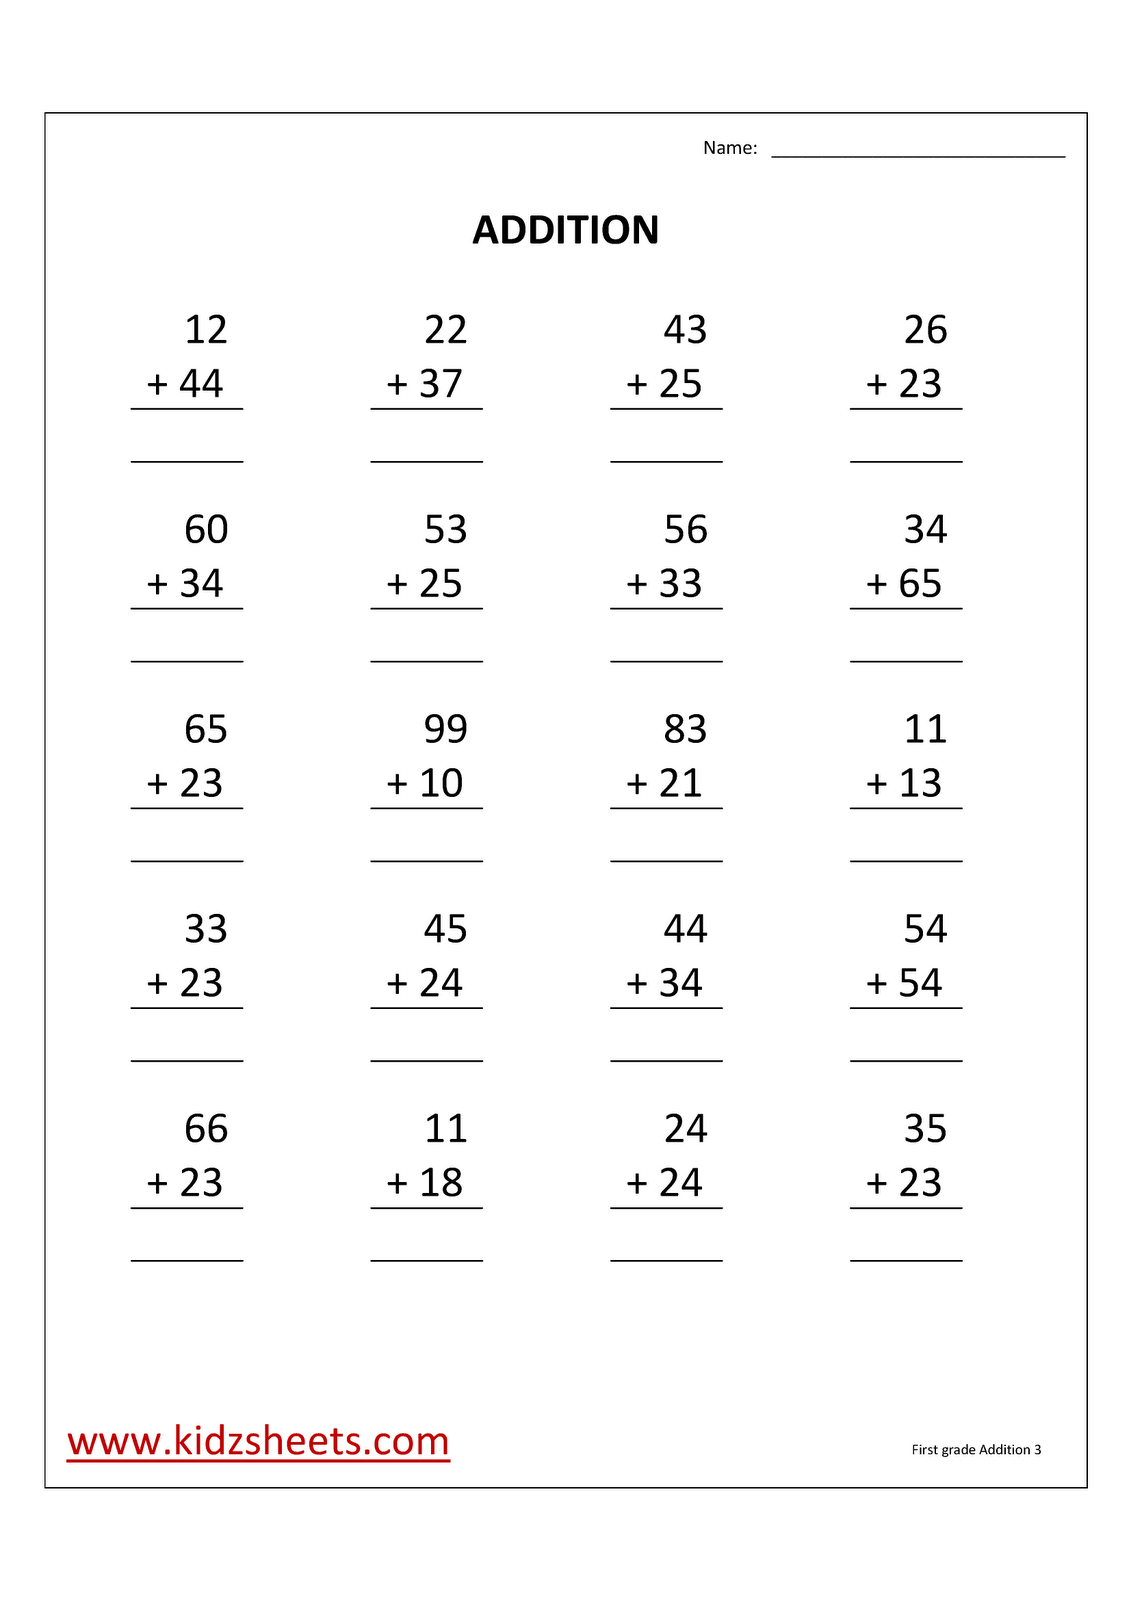 2nd Grade Addition Worksheet Two Digit Addition With Regrouping – Addition Worksheets for Year 1